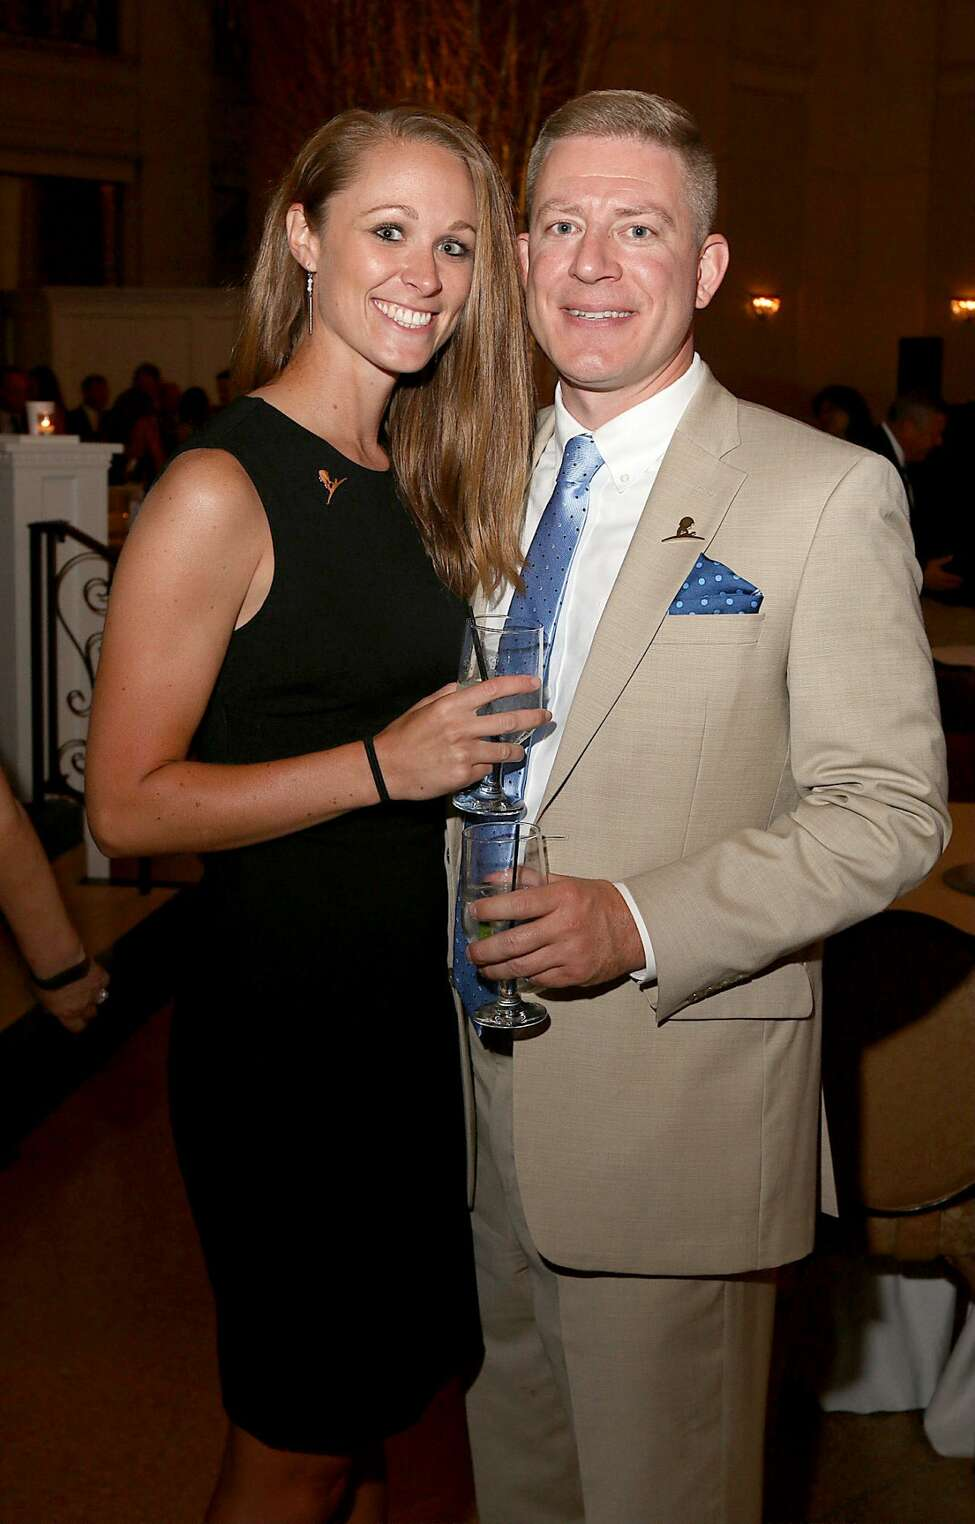 Were you Seen at the fourth annual St. Jude Gala presented by AngioDynamics, a fundraiser forSt. Jude Children's Research Hospital held at the Hall of Springs in Saratoga Springs on Thursday, Sept. 1, 2016?